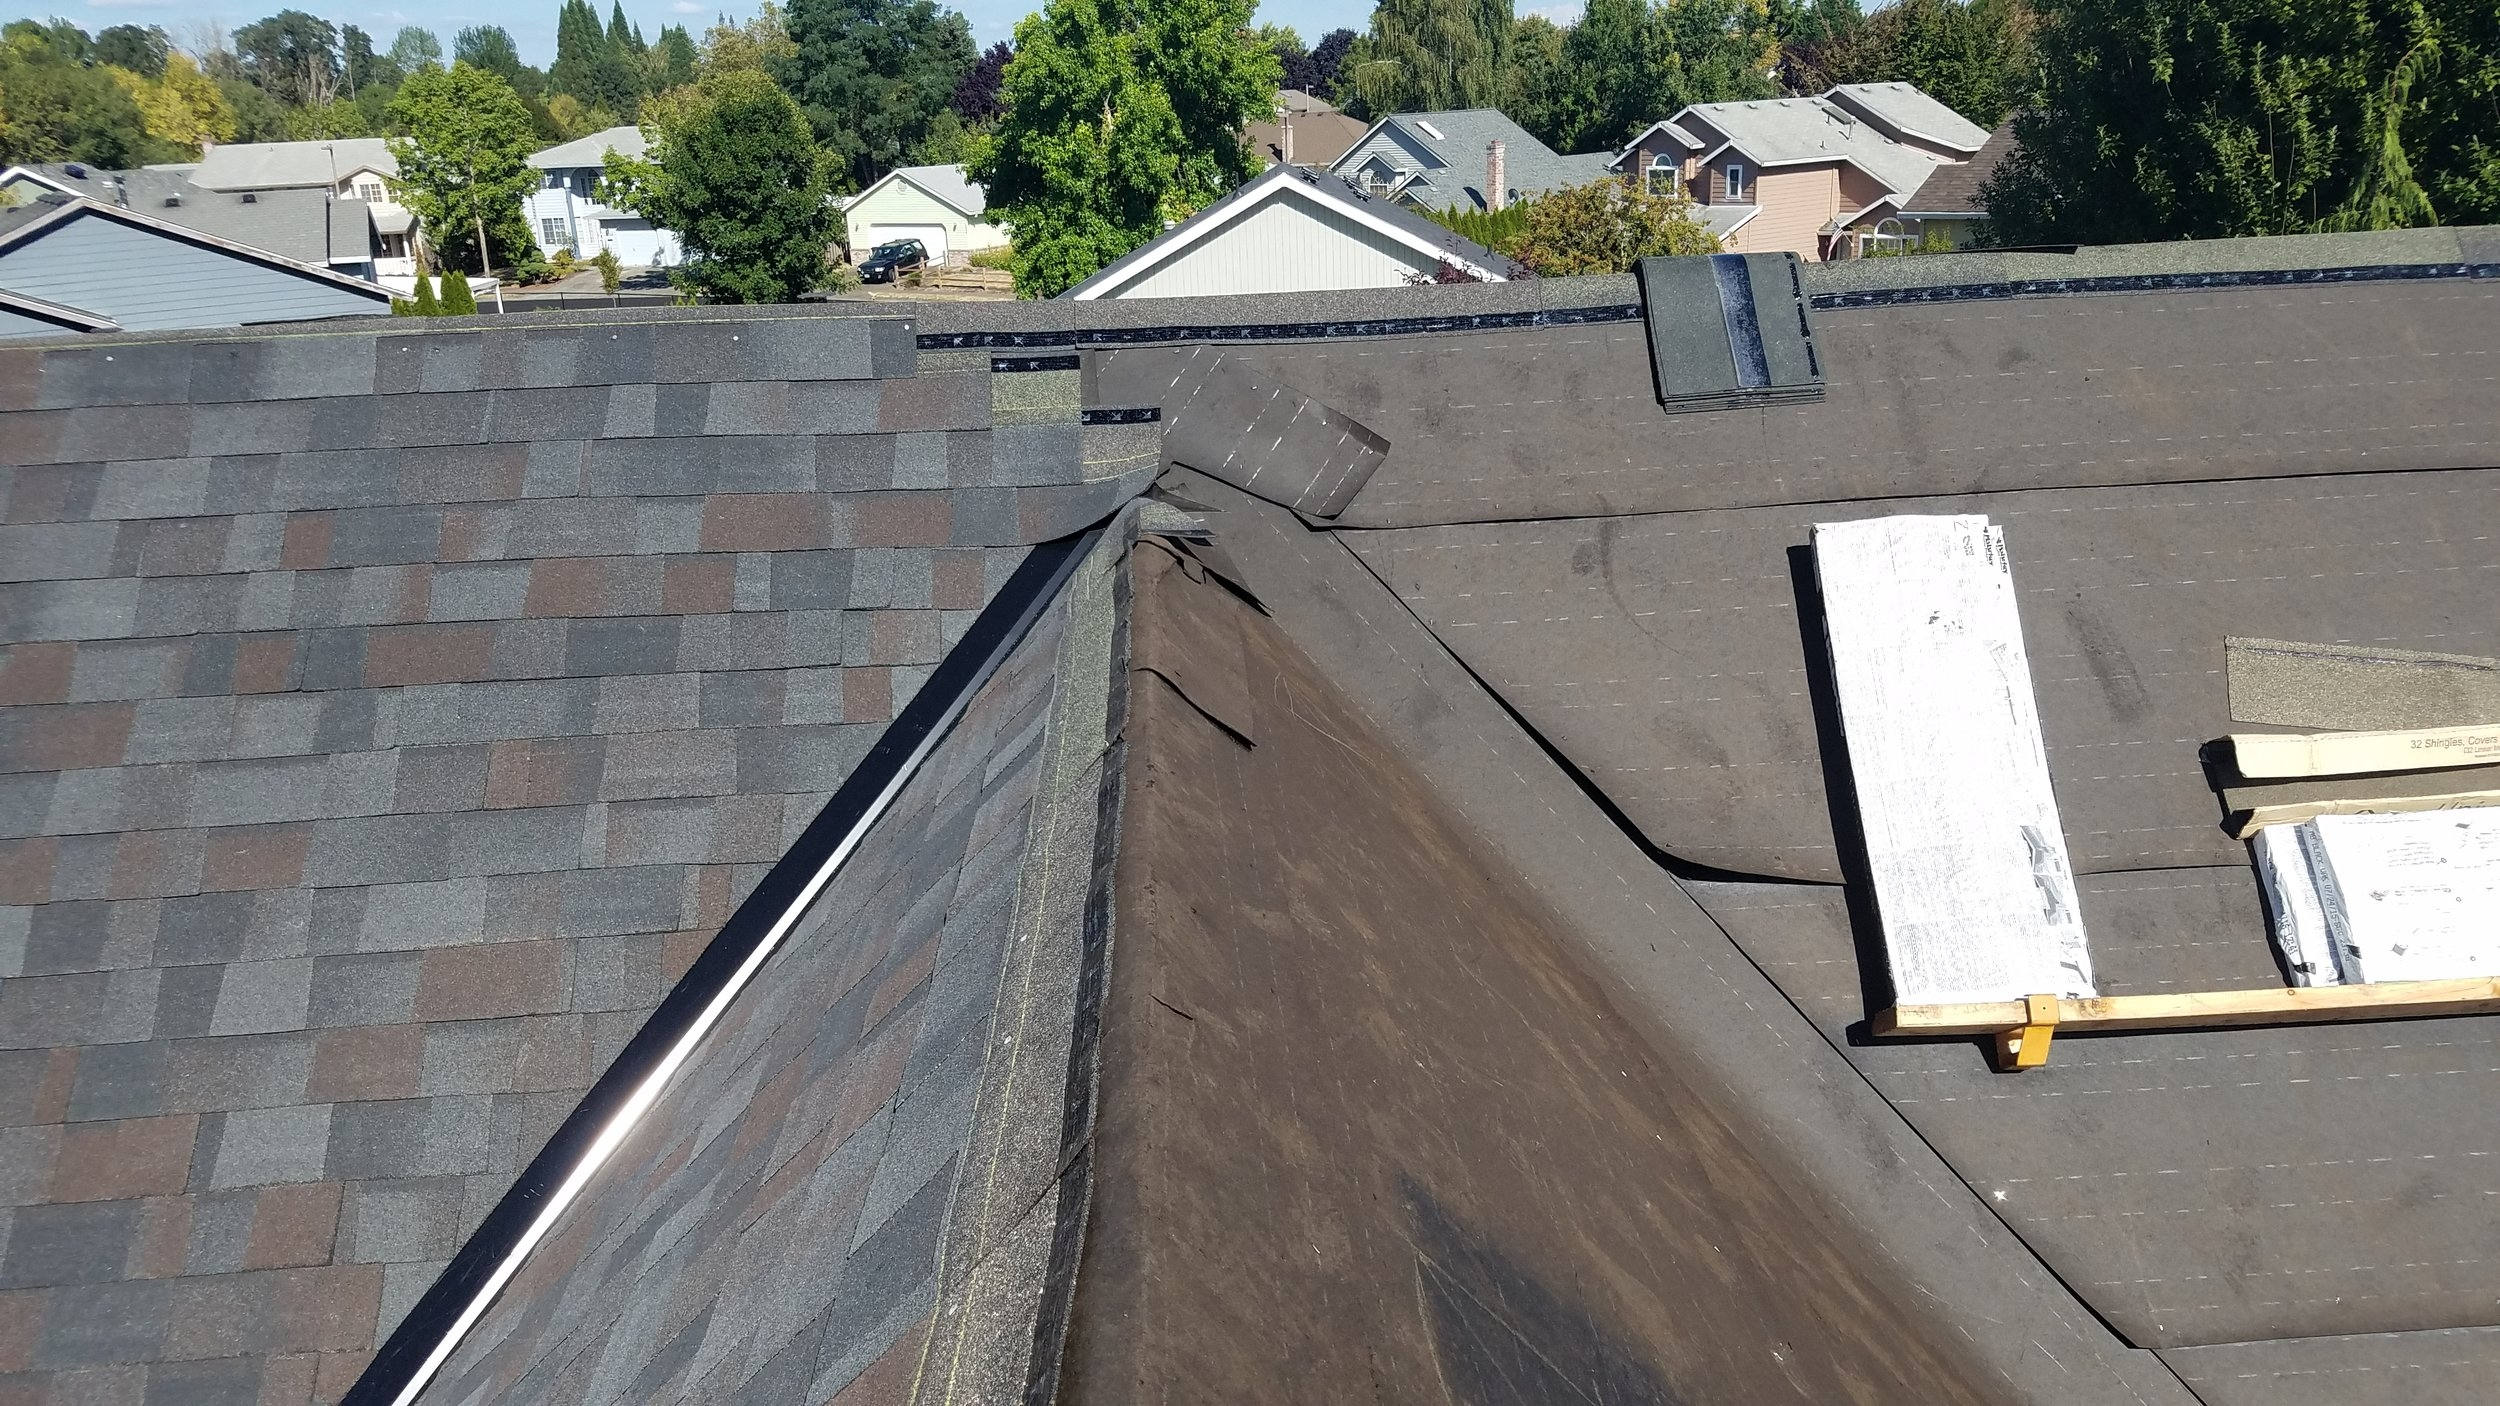 This photo shows part of the installation process with the felt underlayment, metal valley and laying the shingles down.